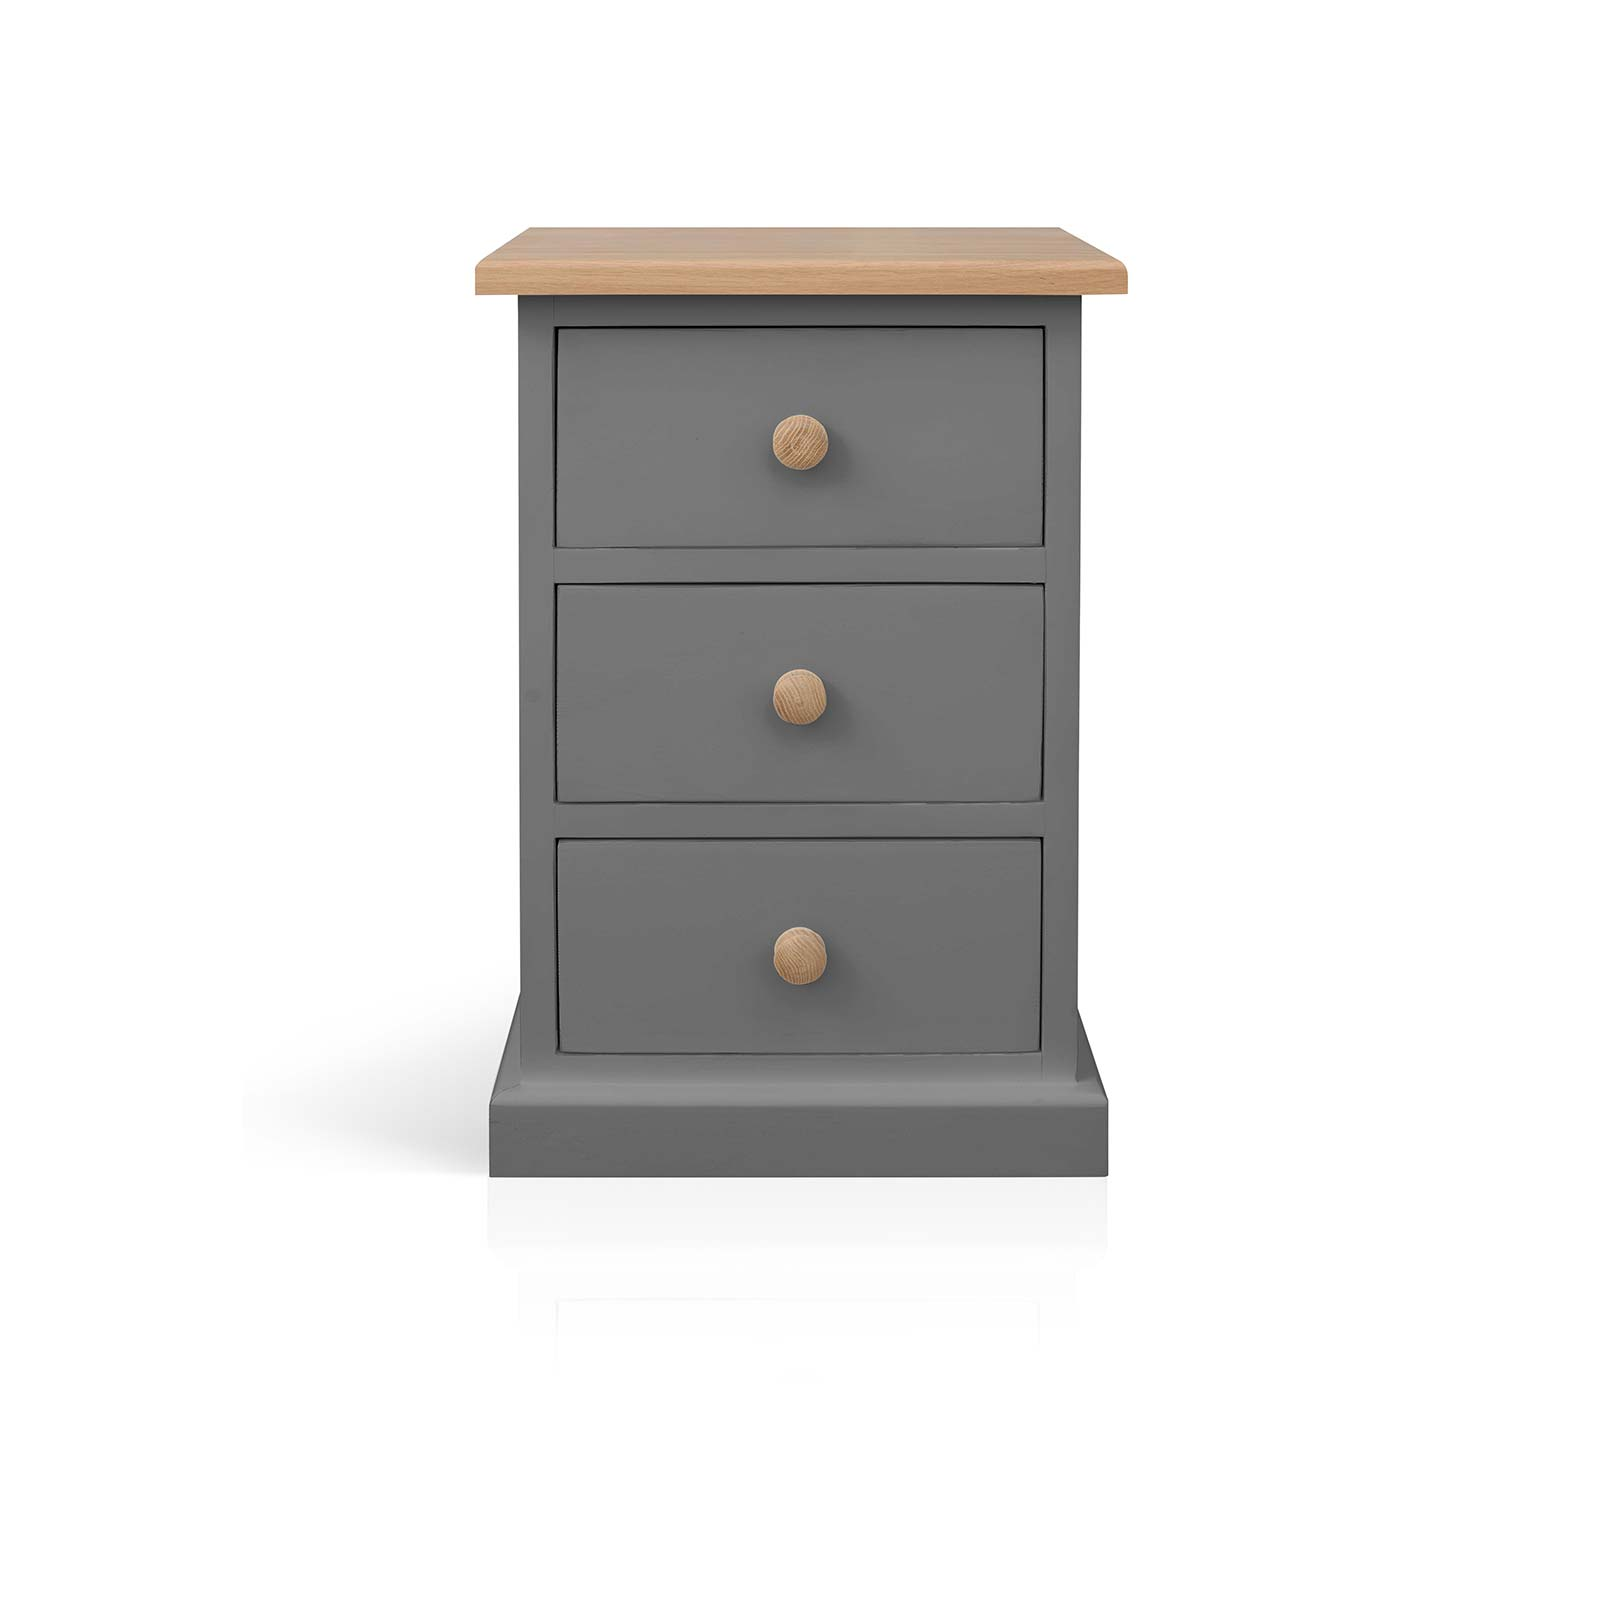 Beyond Home The Soho Painted Furniture Collection 3 Drawer Bedside Cabinet in Grey